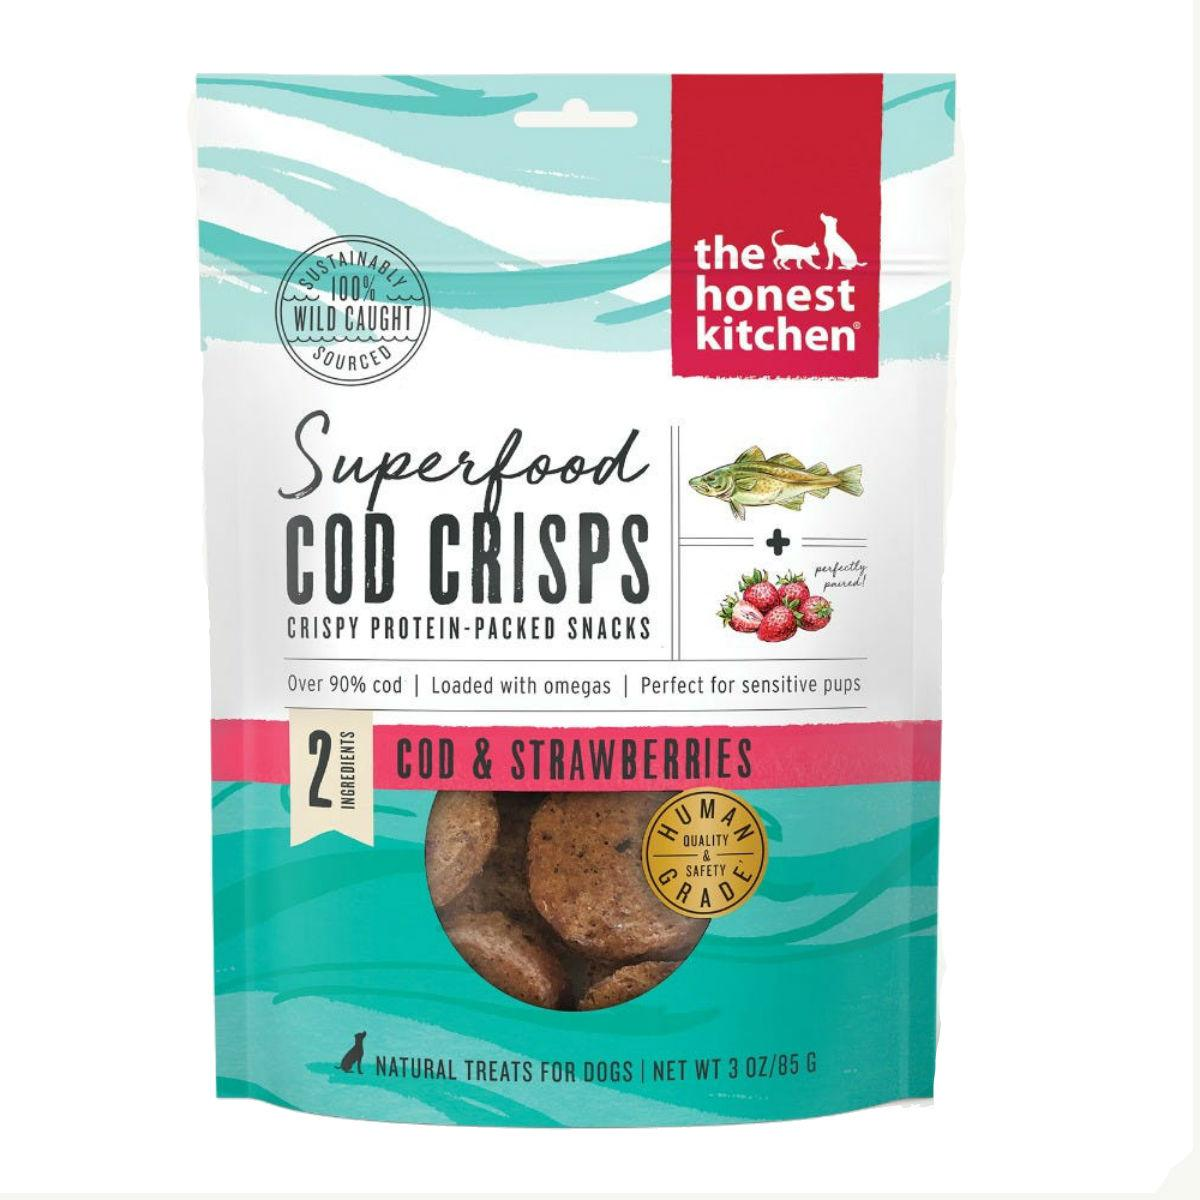 The Honest Kitchen Superfood Cod Crisps Dog Treat - Strawberry